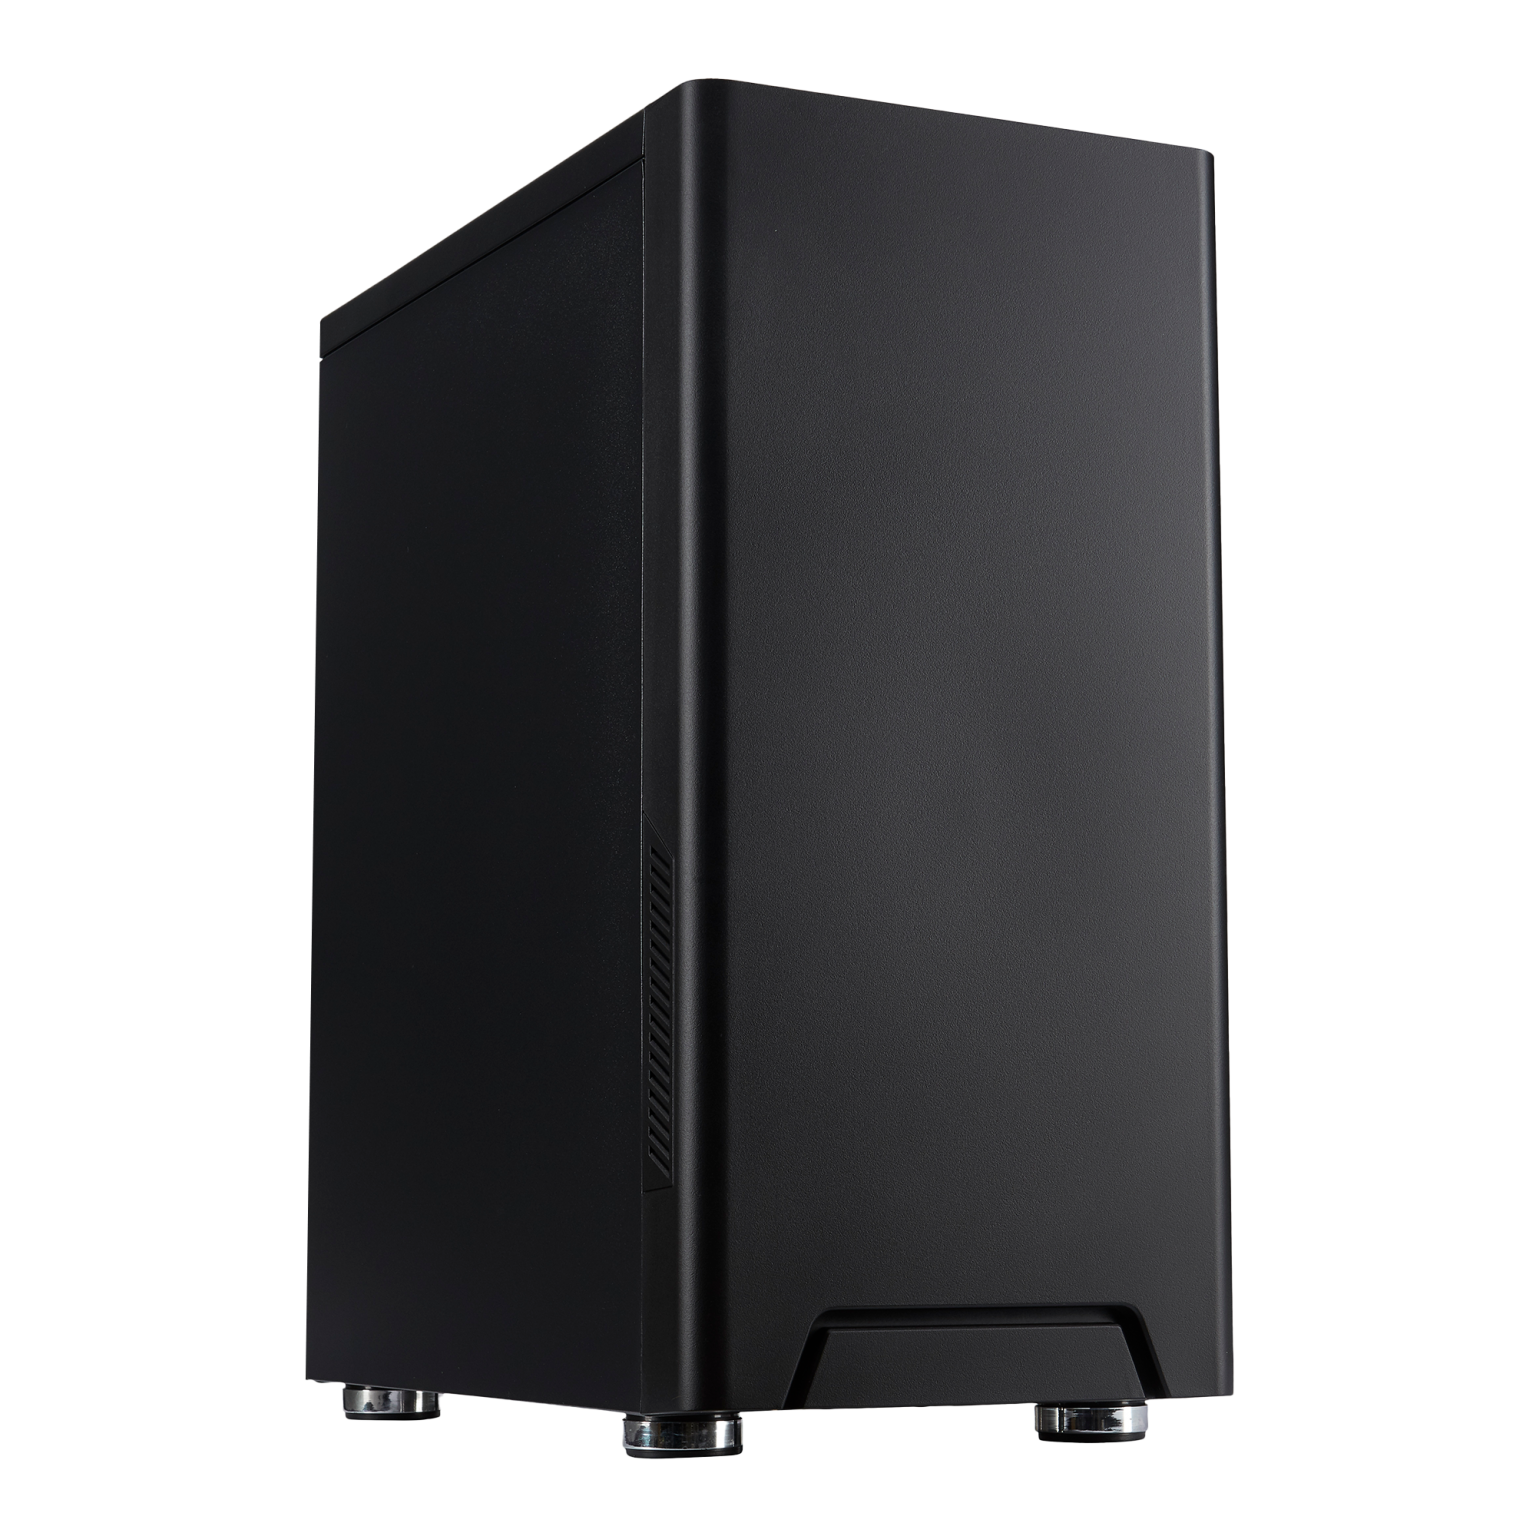 FOURZE T100 Gaming Case product image. Seen from the left front.